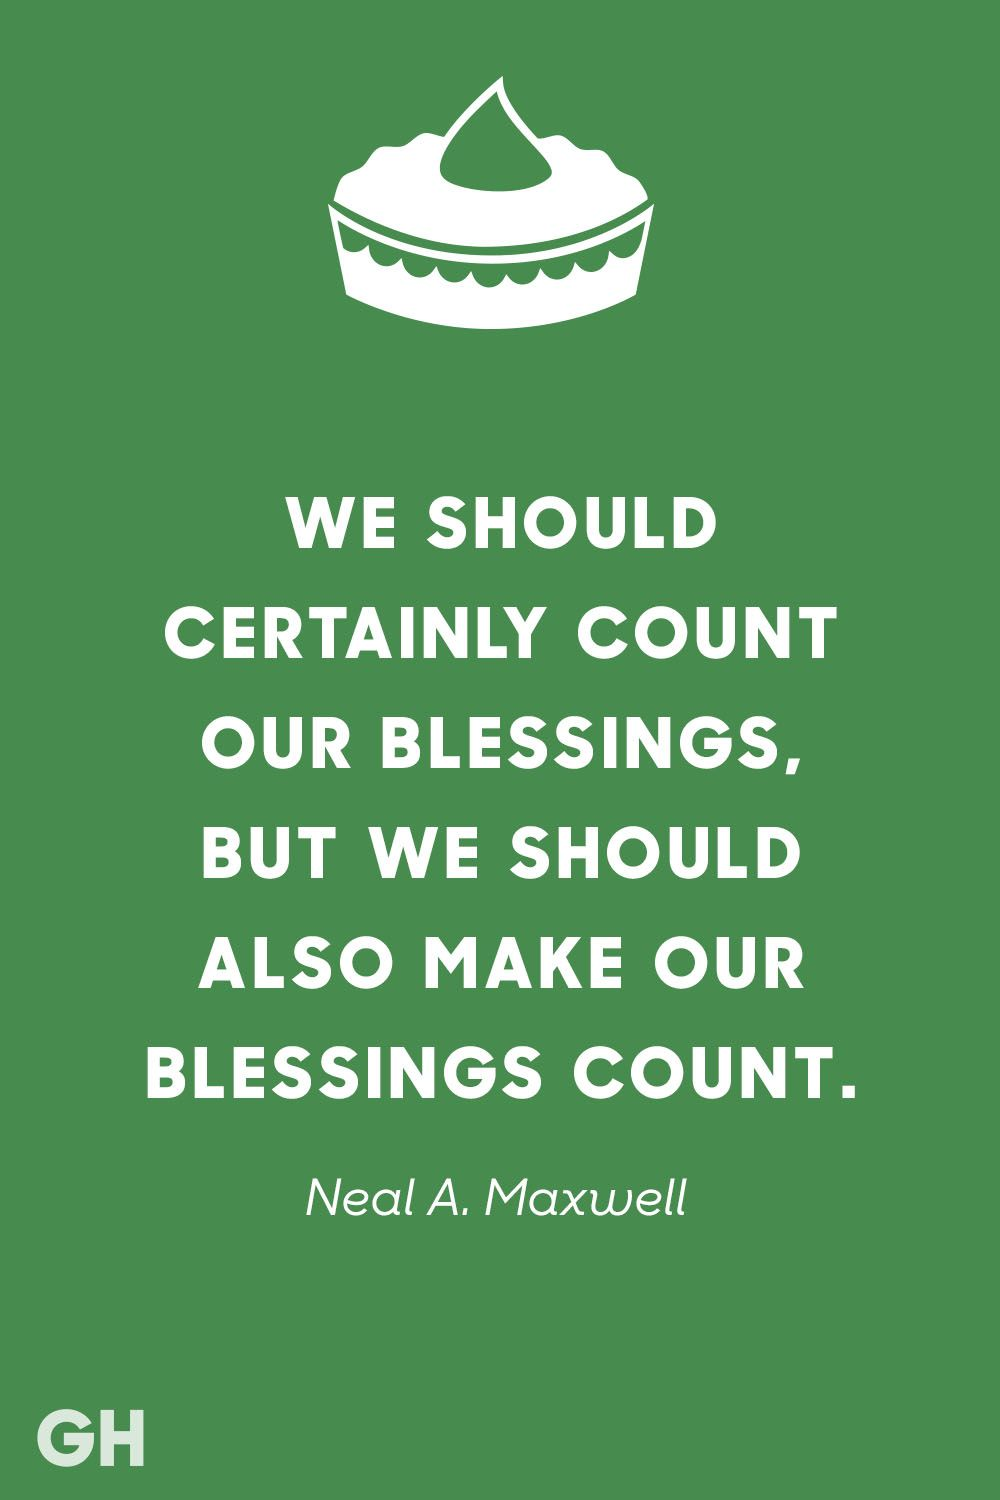 Best Thanksgiving Quotes 22 Best Thanksgiving Quotes   Inspirational and Funny Quotes About  Best Thanksgiving Quotes